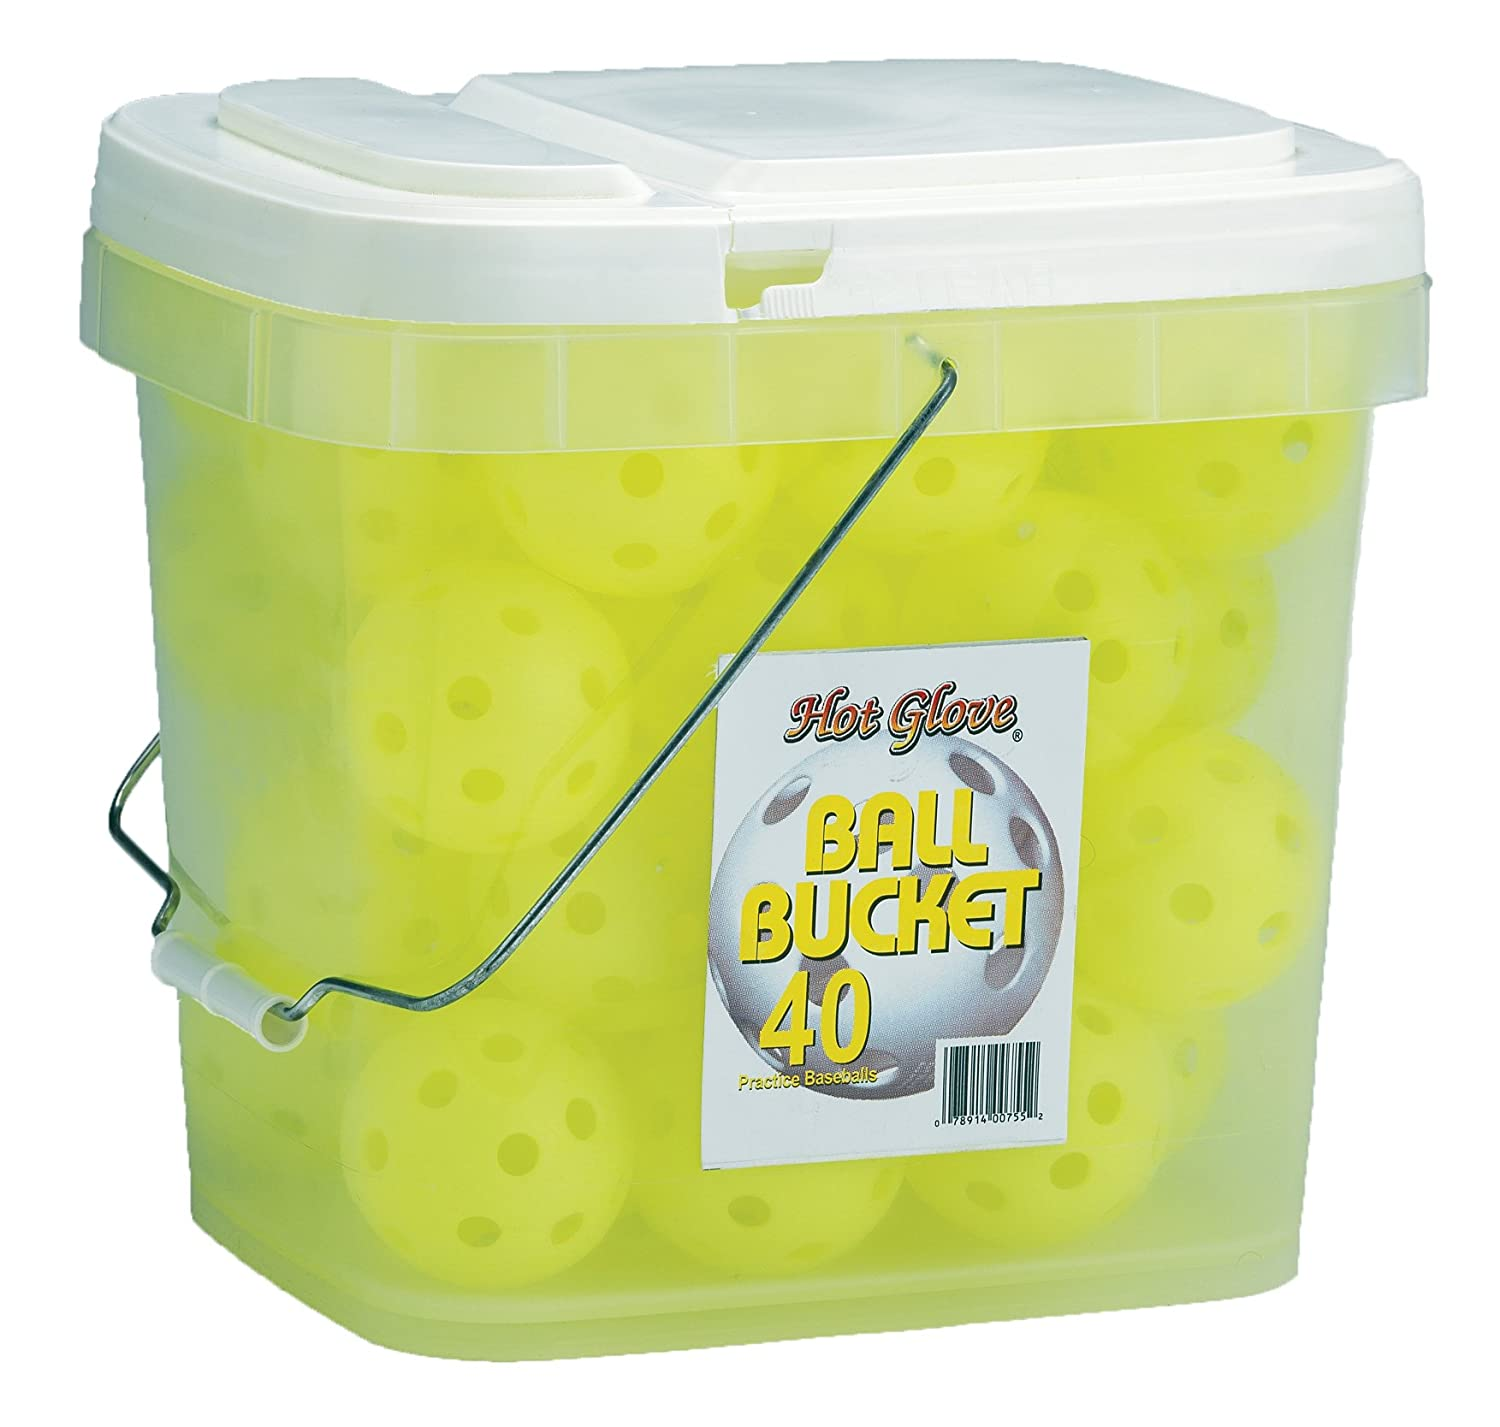 Hot Glove Optic Yellow Practice Baseballs Bucket of 40 Balls BBP-40-OY